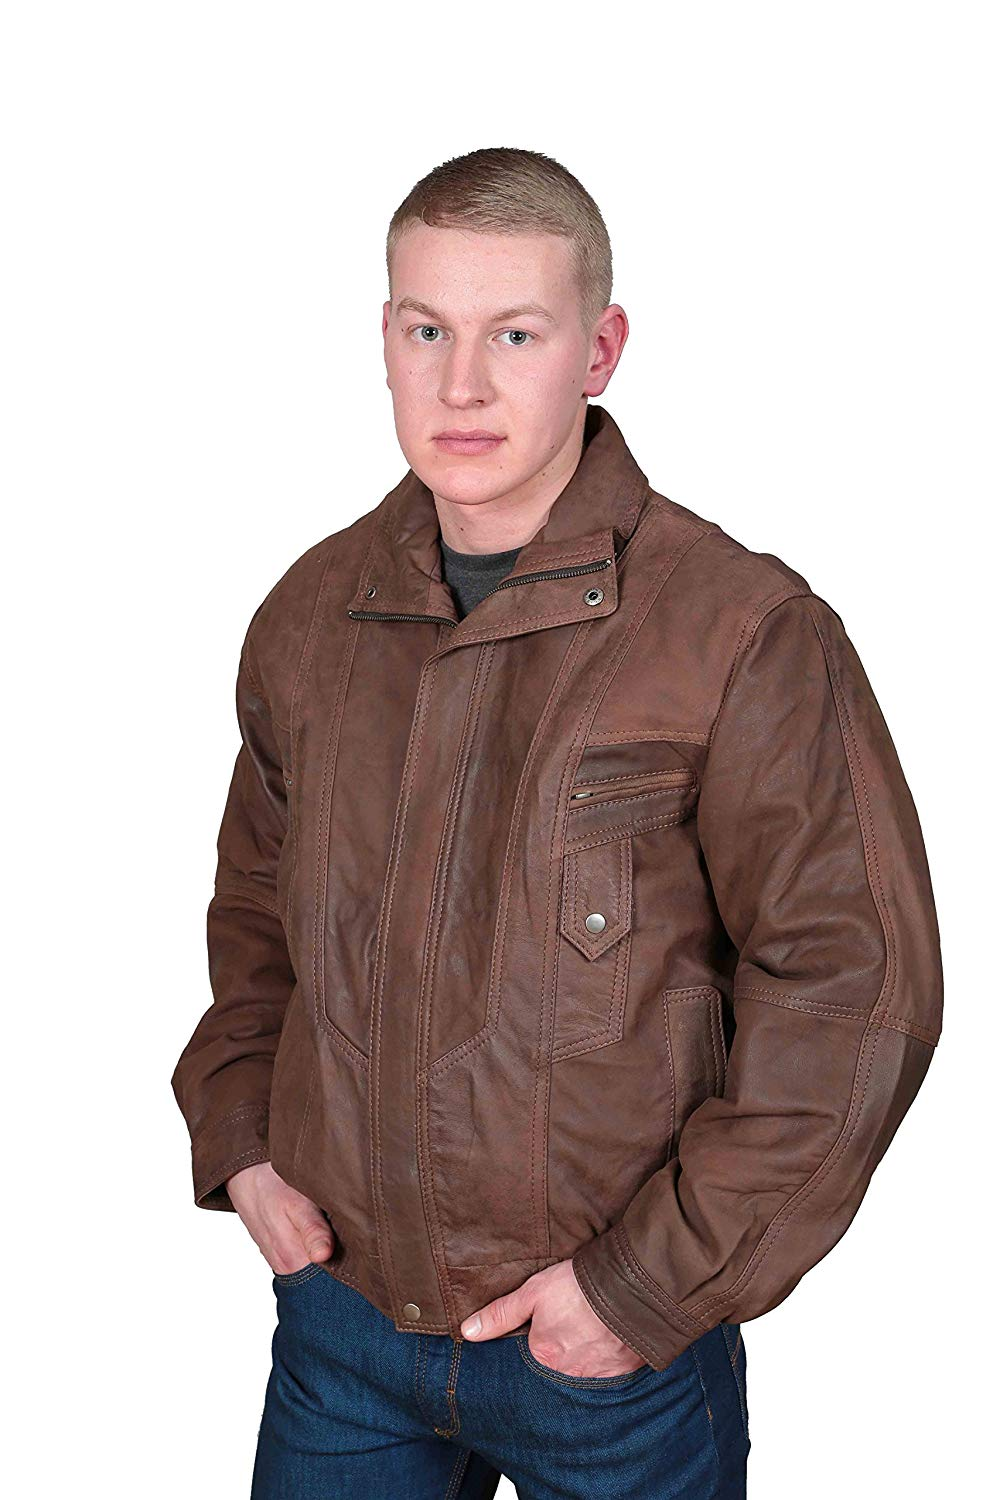 A1 FASHION GOODS Mens Classic Blouson Leather Jacket Alan Brown Gents Bomber Style Leather Jacket